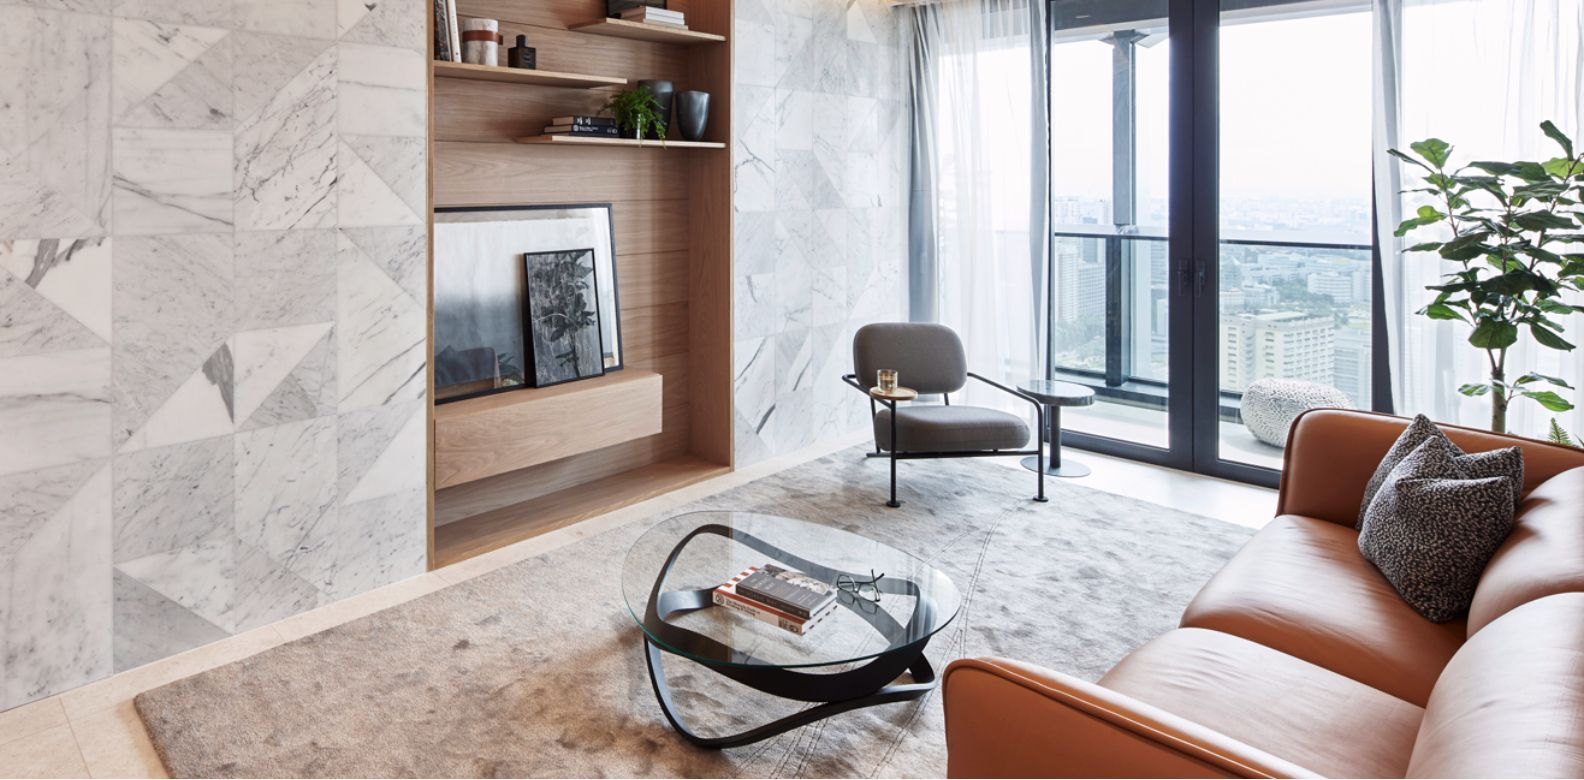 5 Reasons Duo Residences Architectural Feat Singapore Tatler Architecture Design